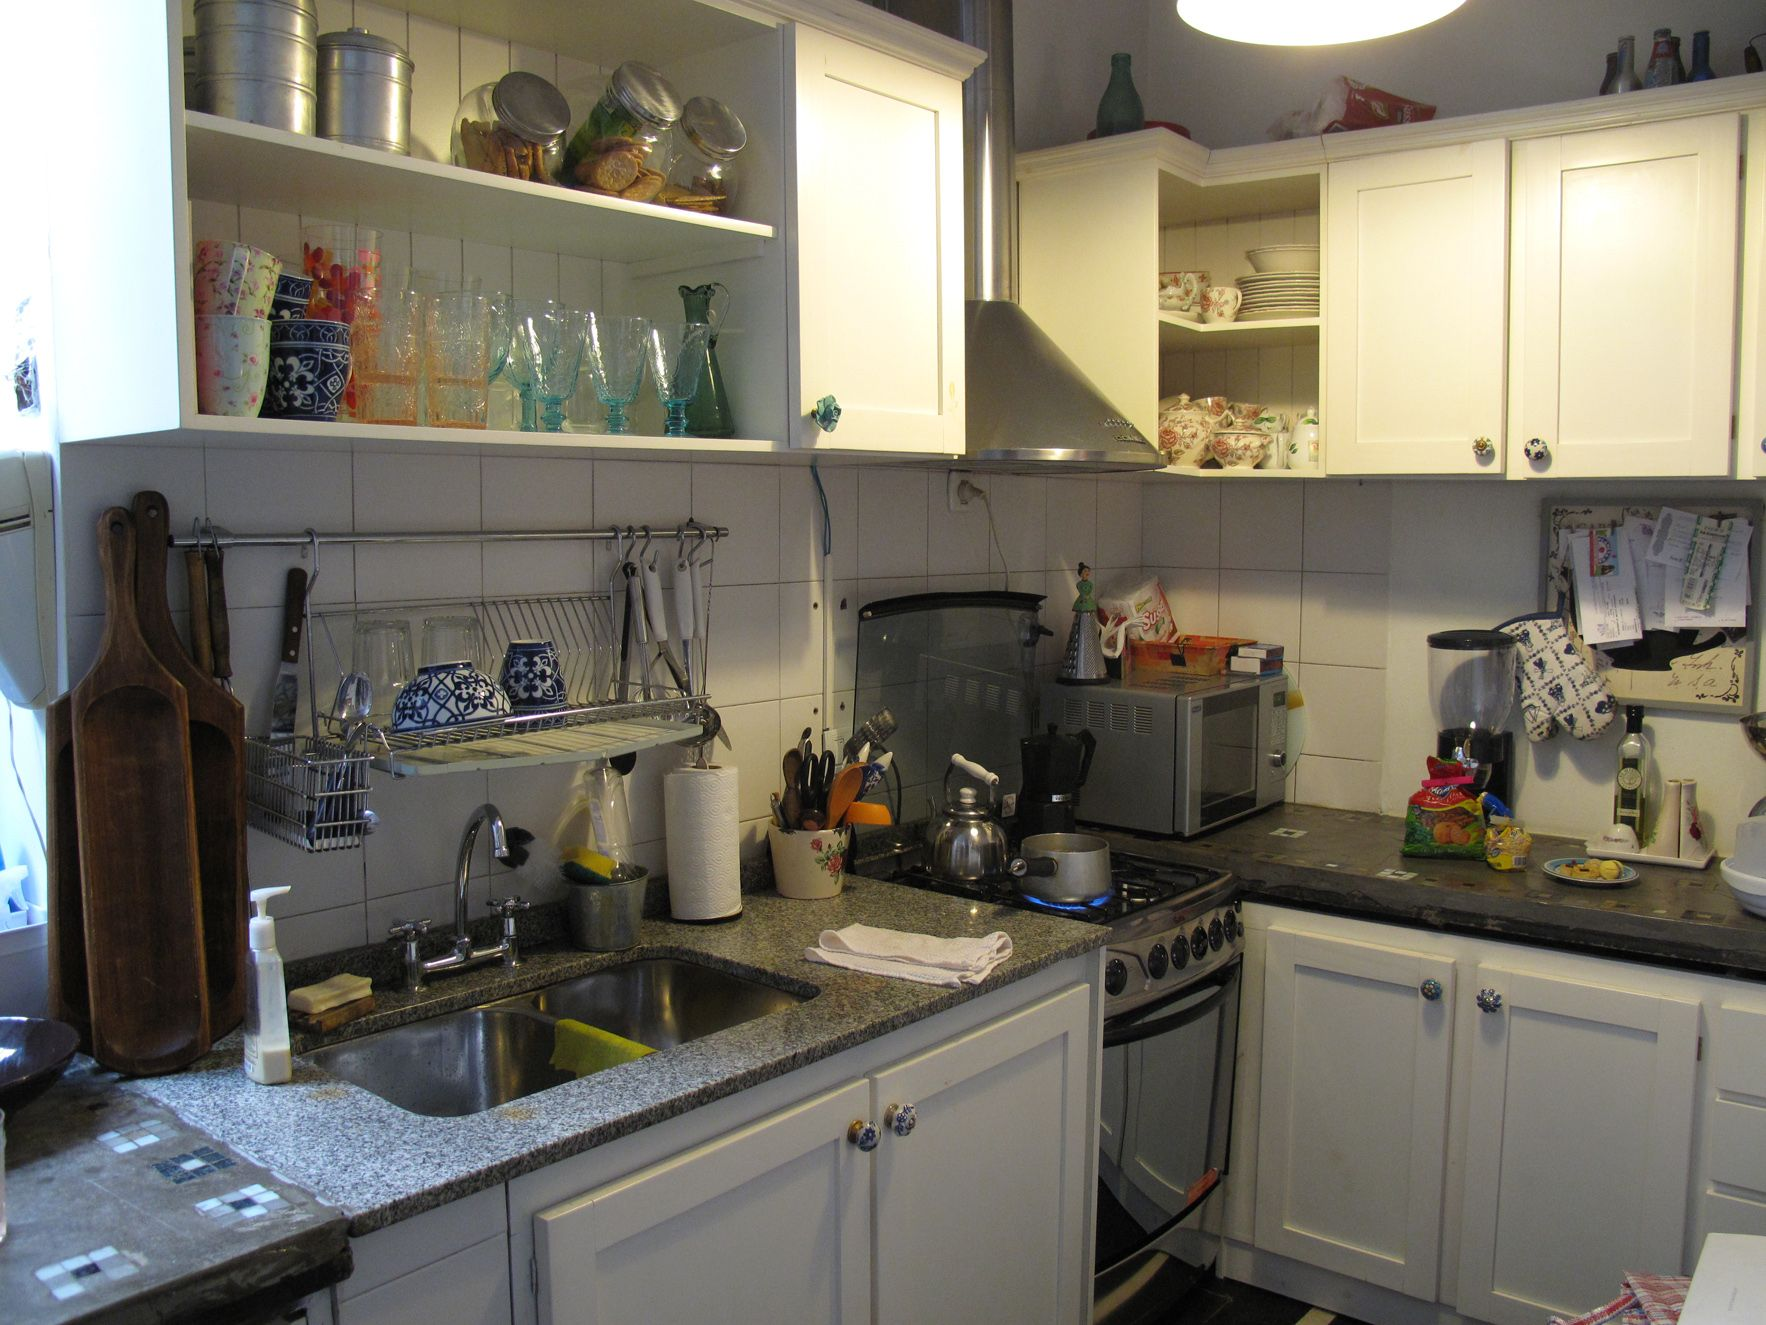 This used to be my kitchen